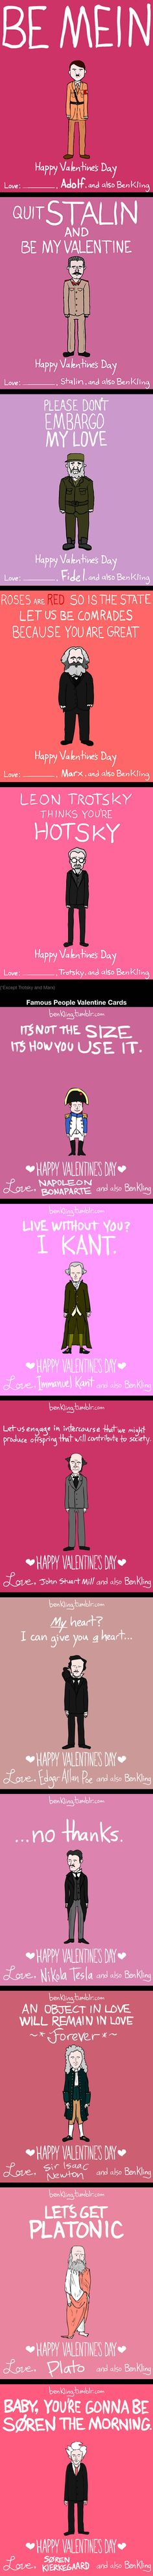 13 Dictator and Famous People Valentine Day Cards (By Ben Kling)